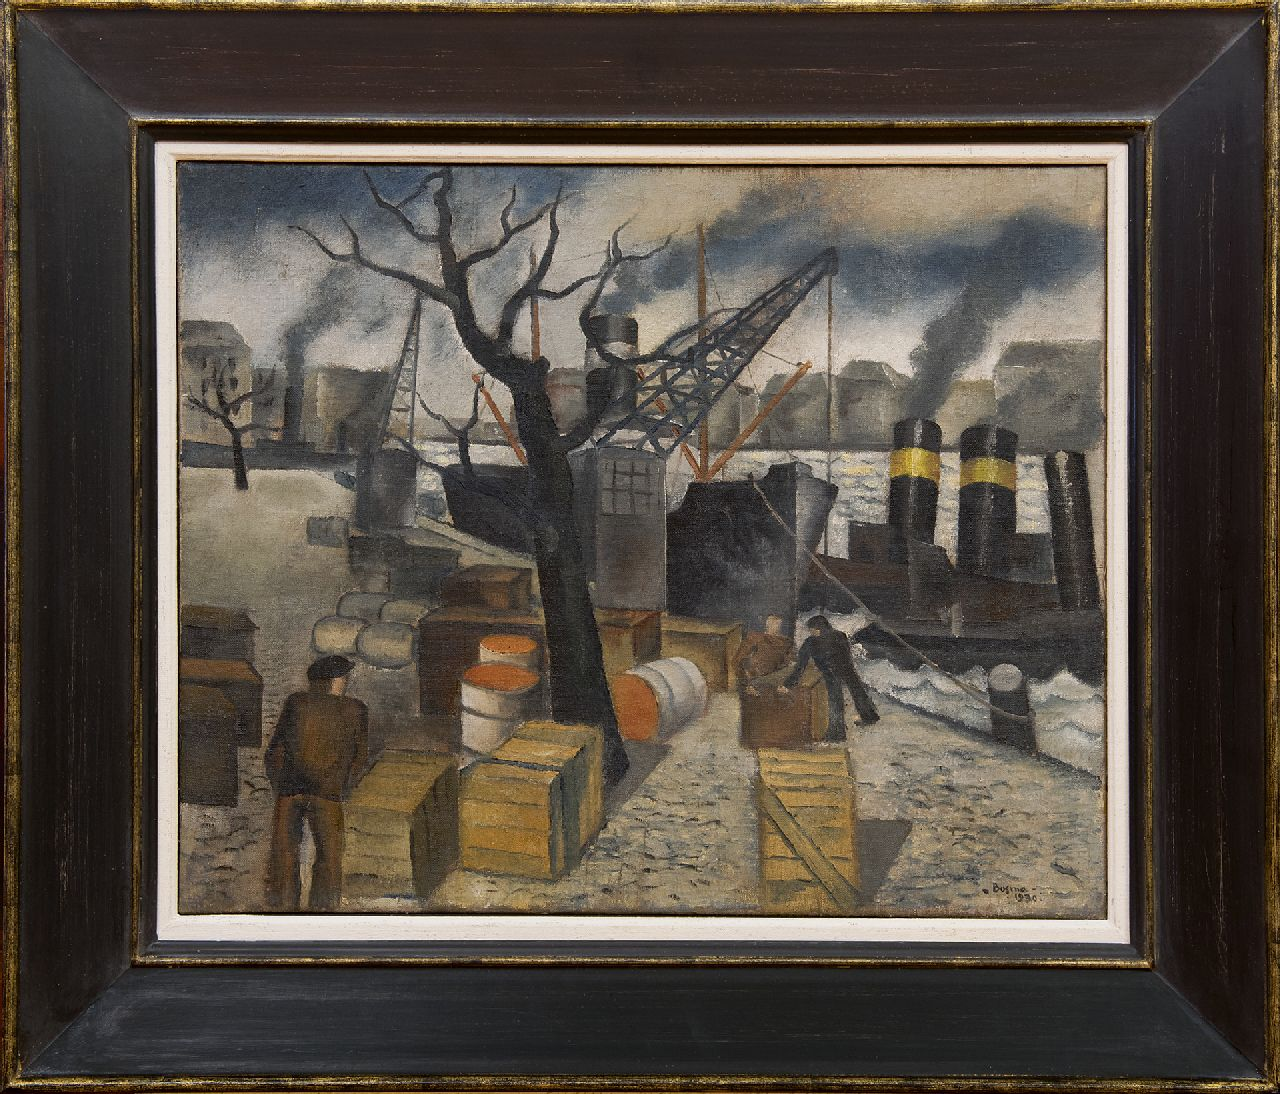 Bosma W.  | Willem 'Wim' Bosma, In the harbour, oil on canvas 45.2 x 55.4 cm, signed l.r. and dated 1930